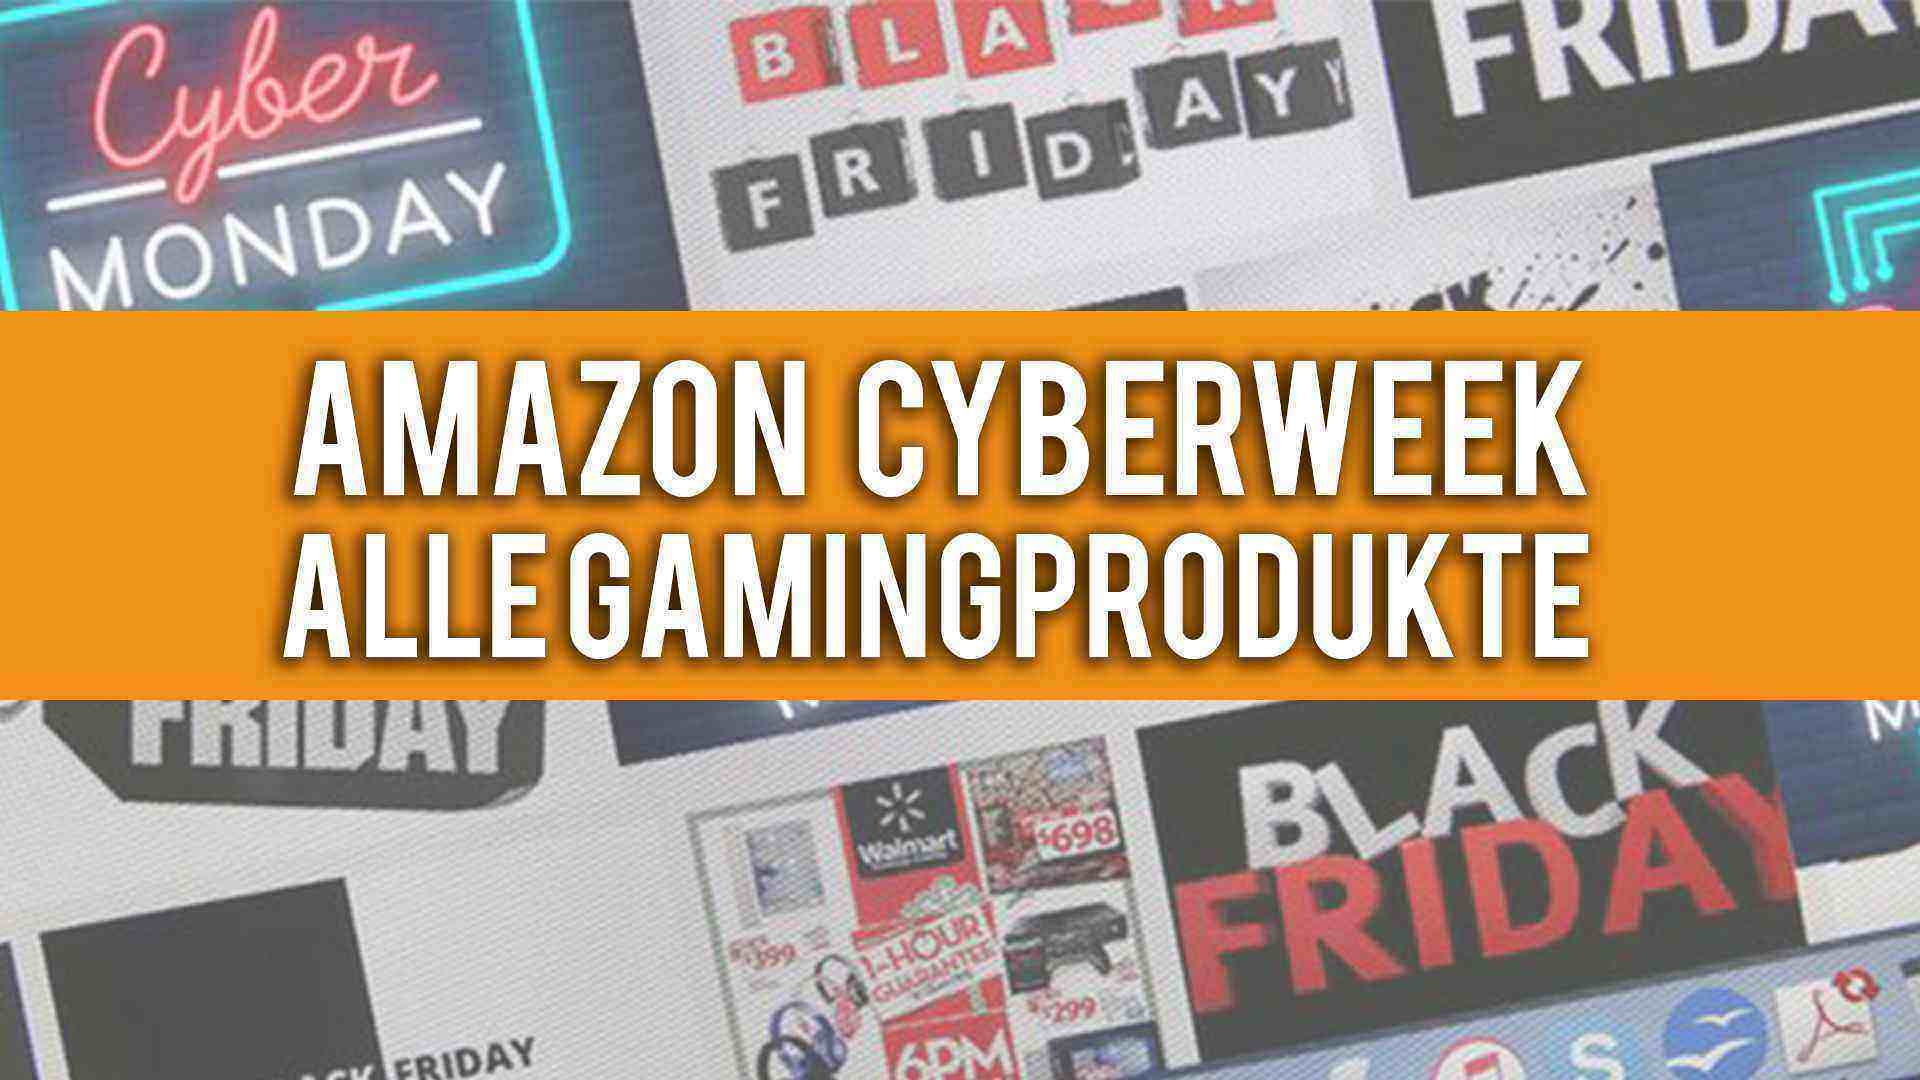 Cyberweek bei Amazon - Alle Gamingprodukte